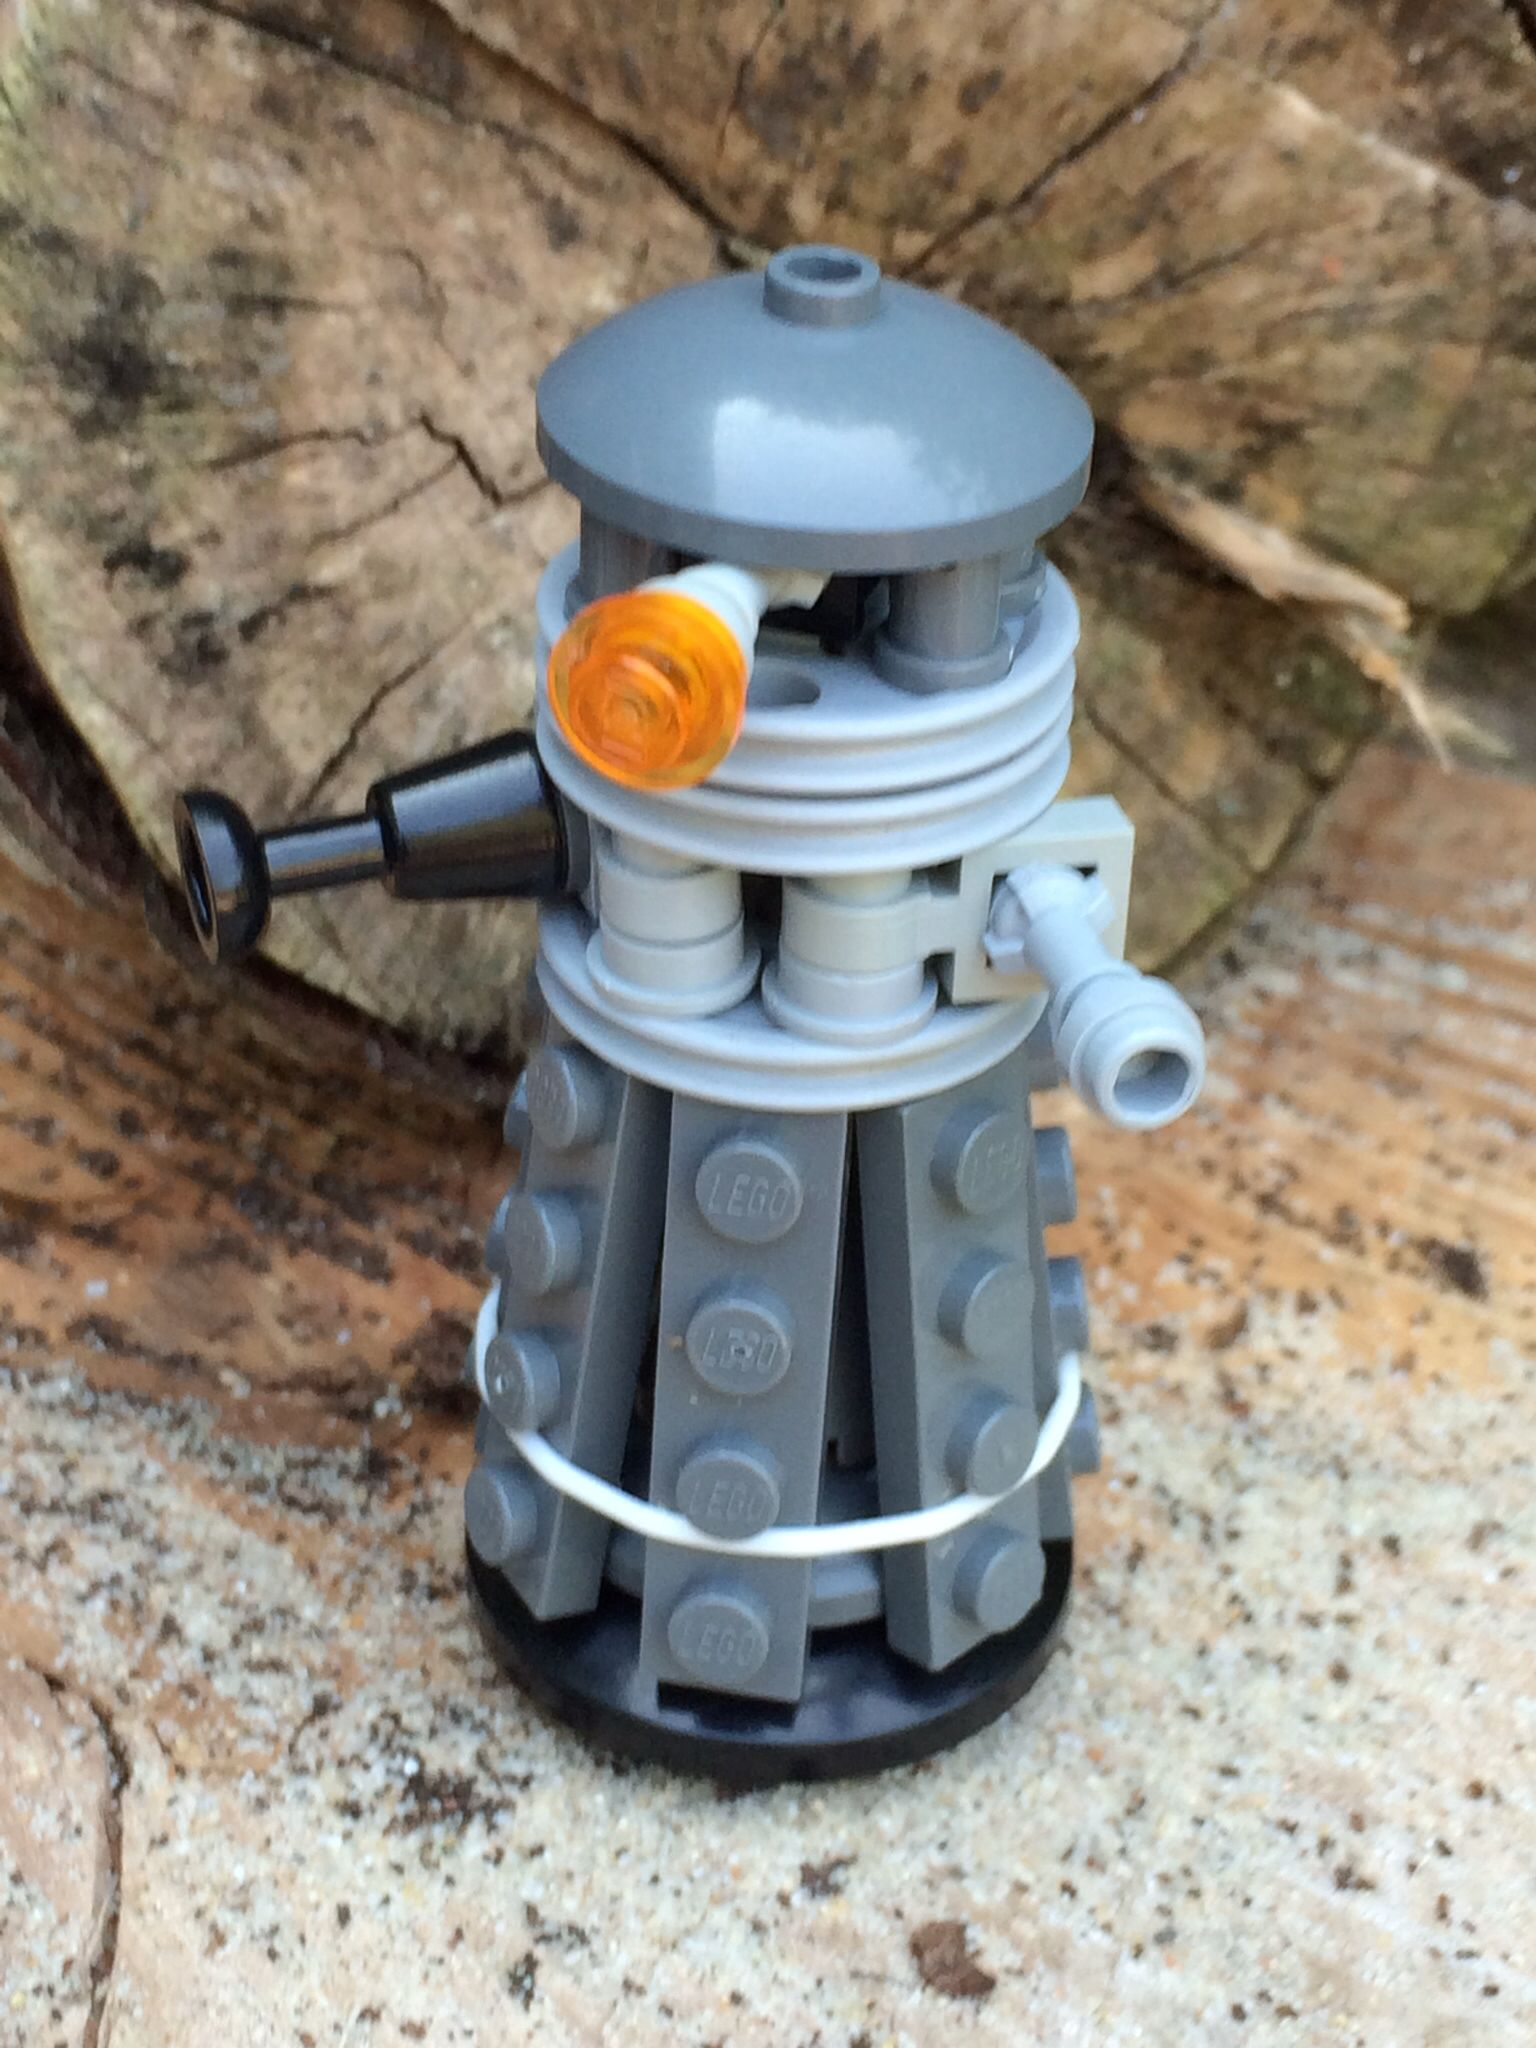 Dr.Who Dalek Lego made by Flo